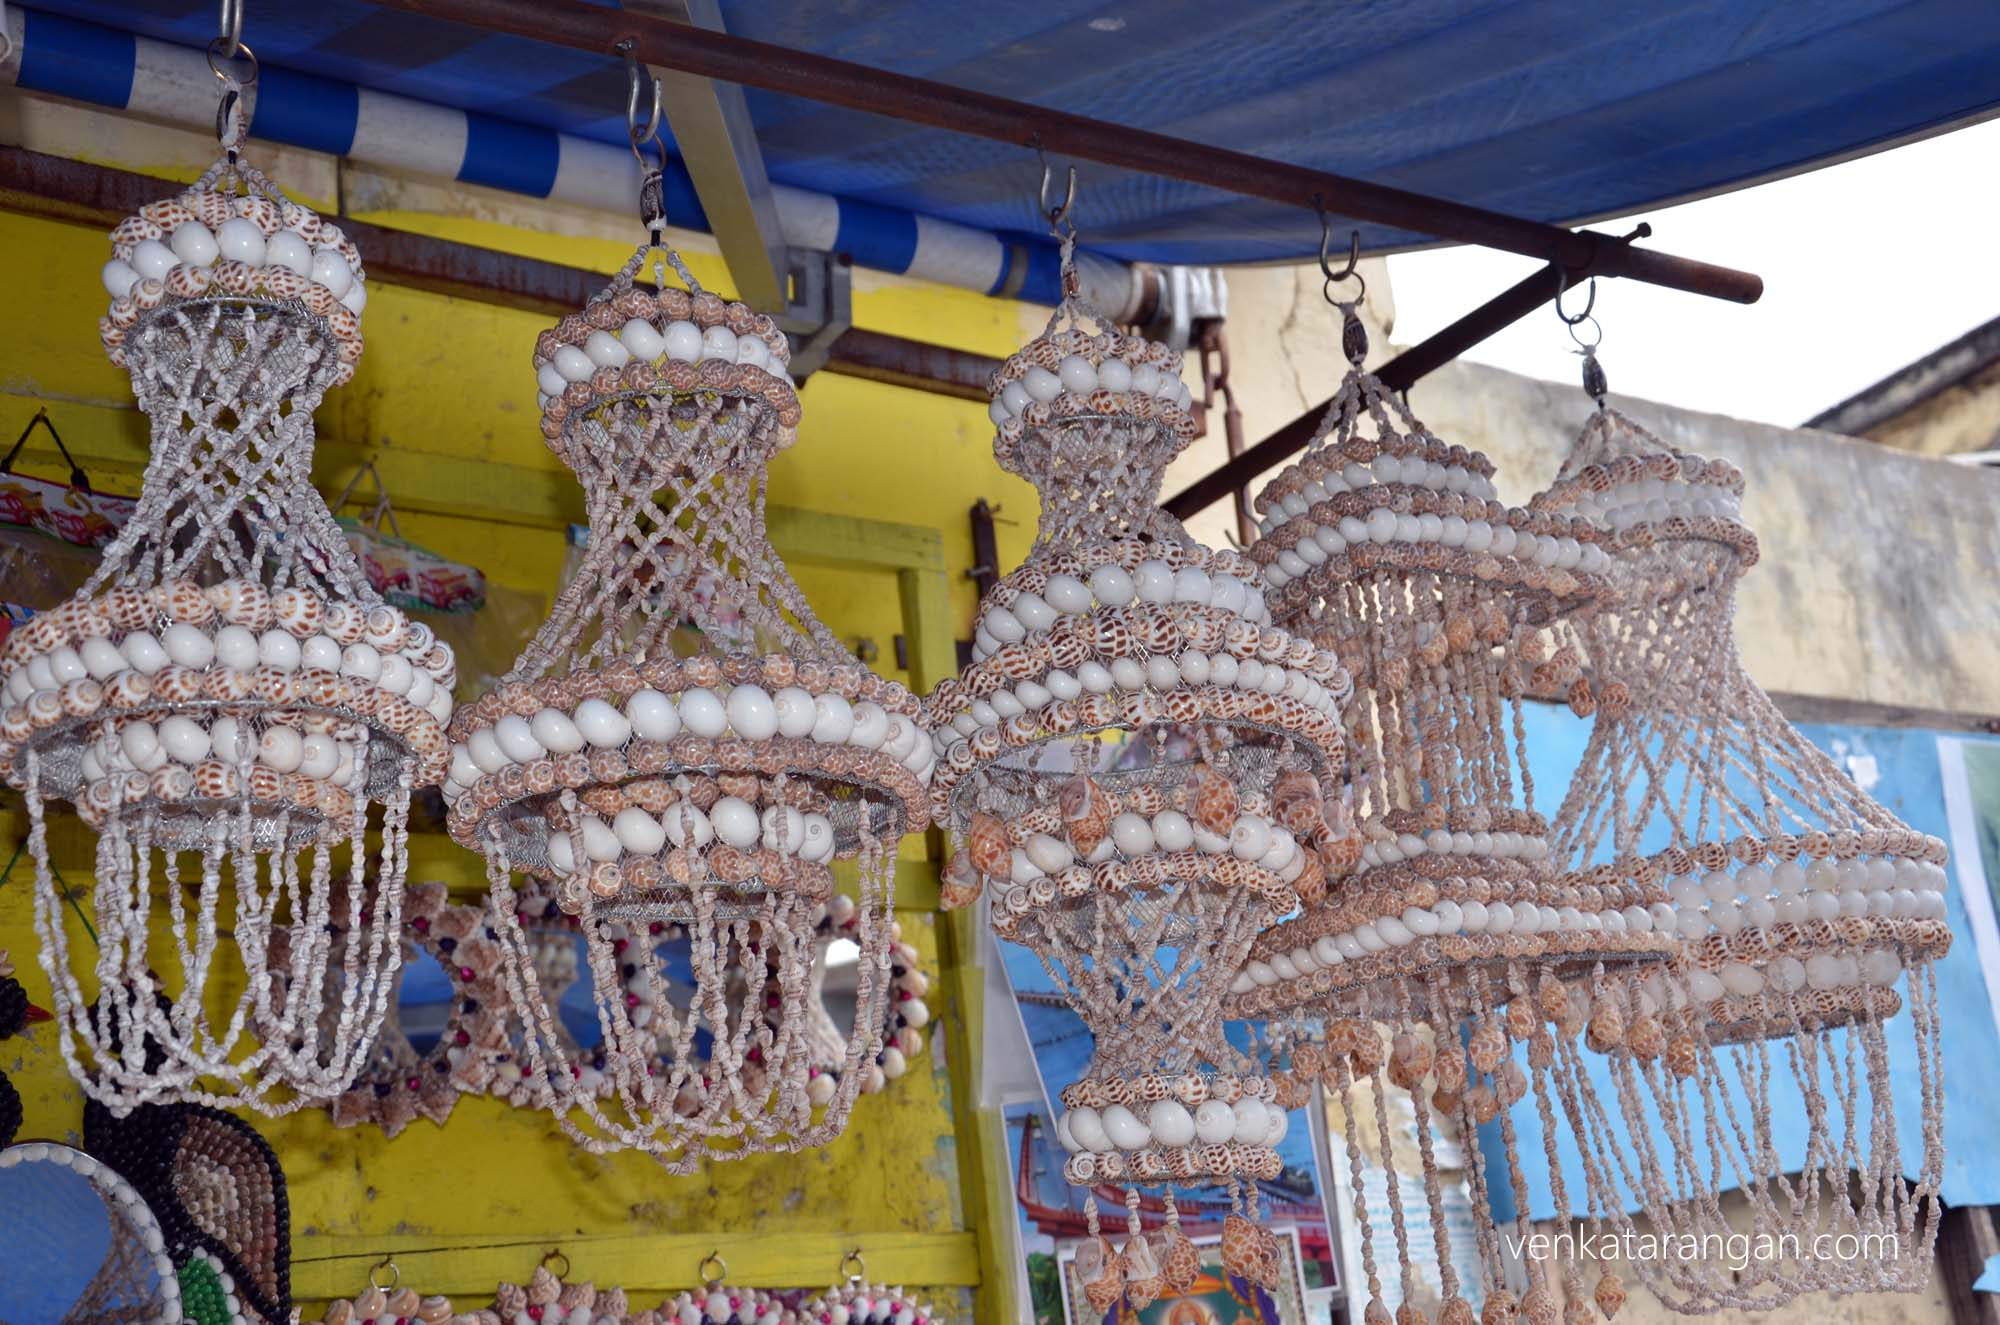 Rameswaram is famous for its handy craft items made from conch and seashells - a shop selling decorative lamp holders